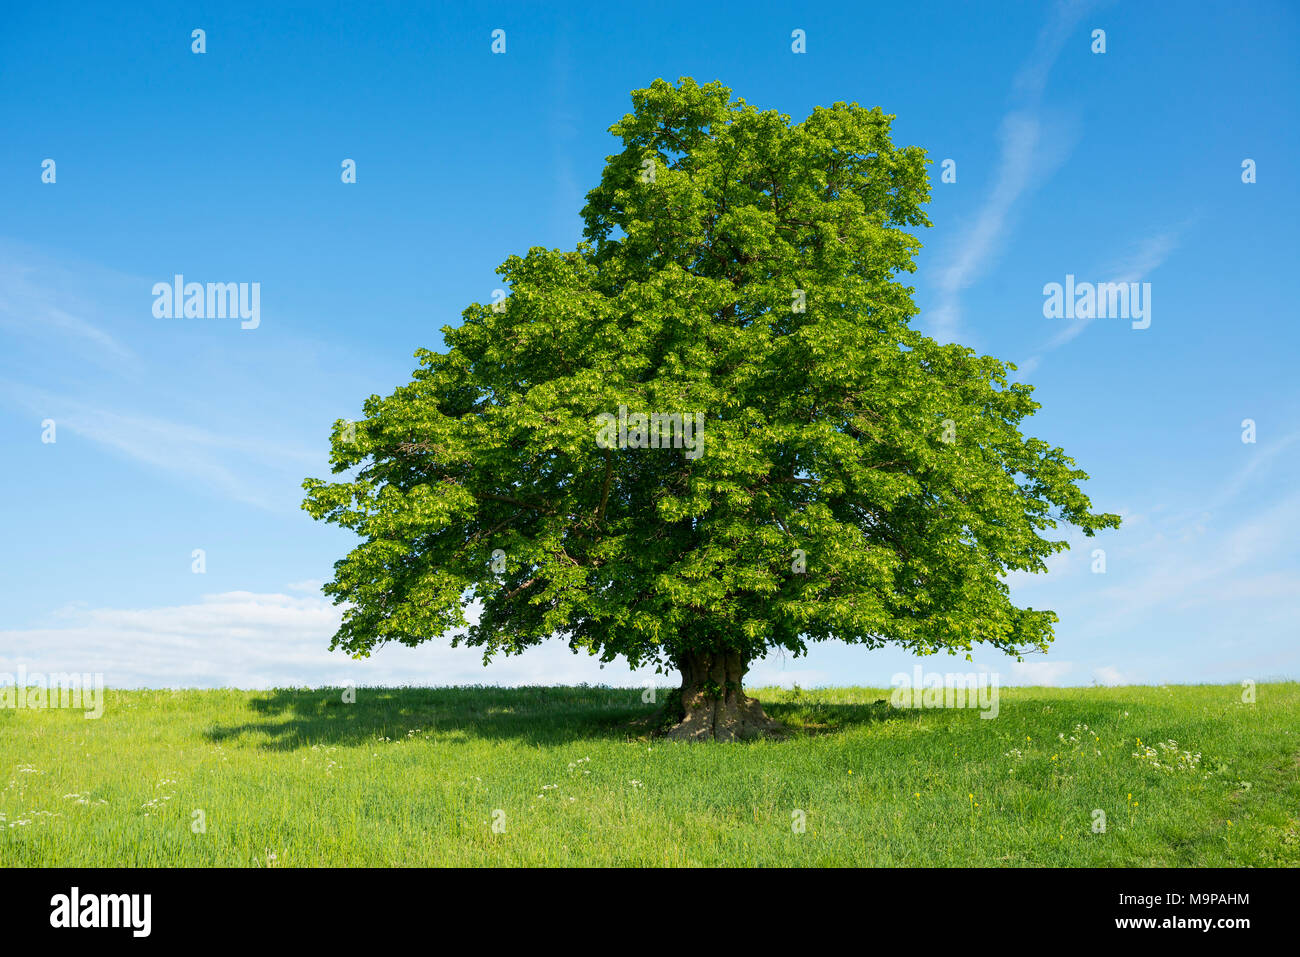 400 years old large-leaved linden (Tilia platyphyllos) in green meadow, solitary tree, Thuringia, Germany Stock Photo